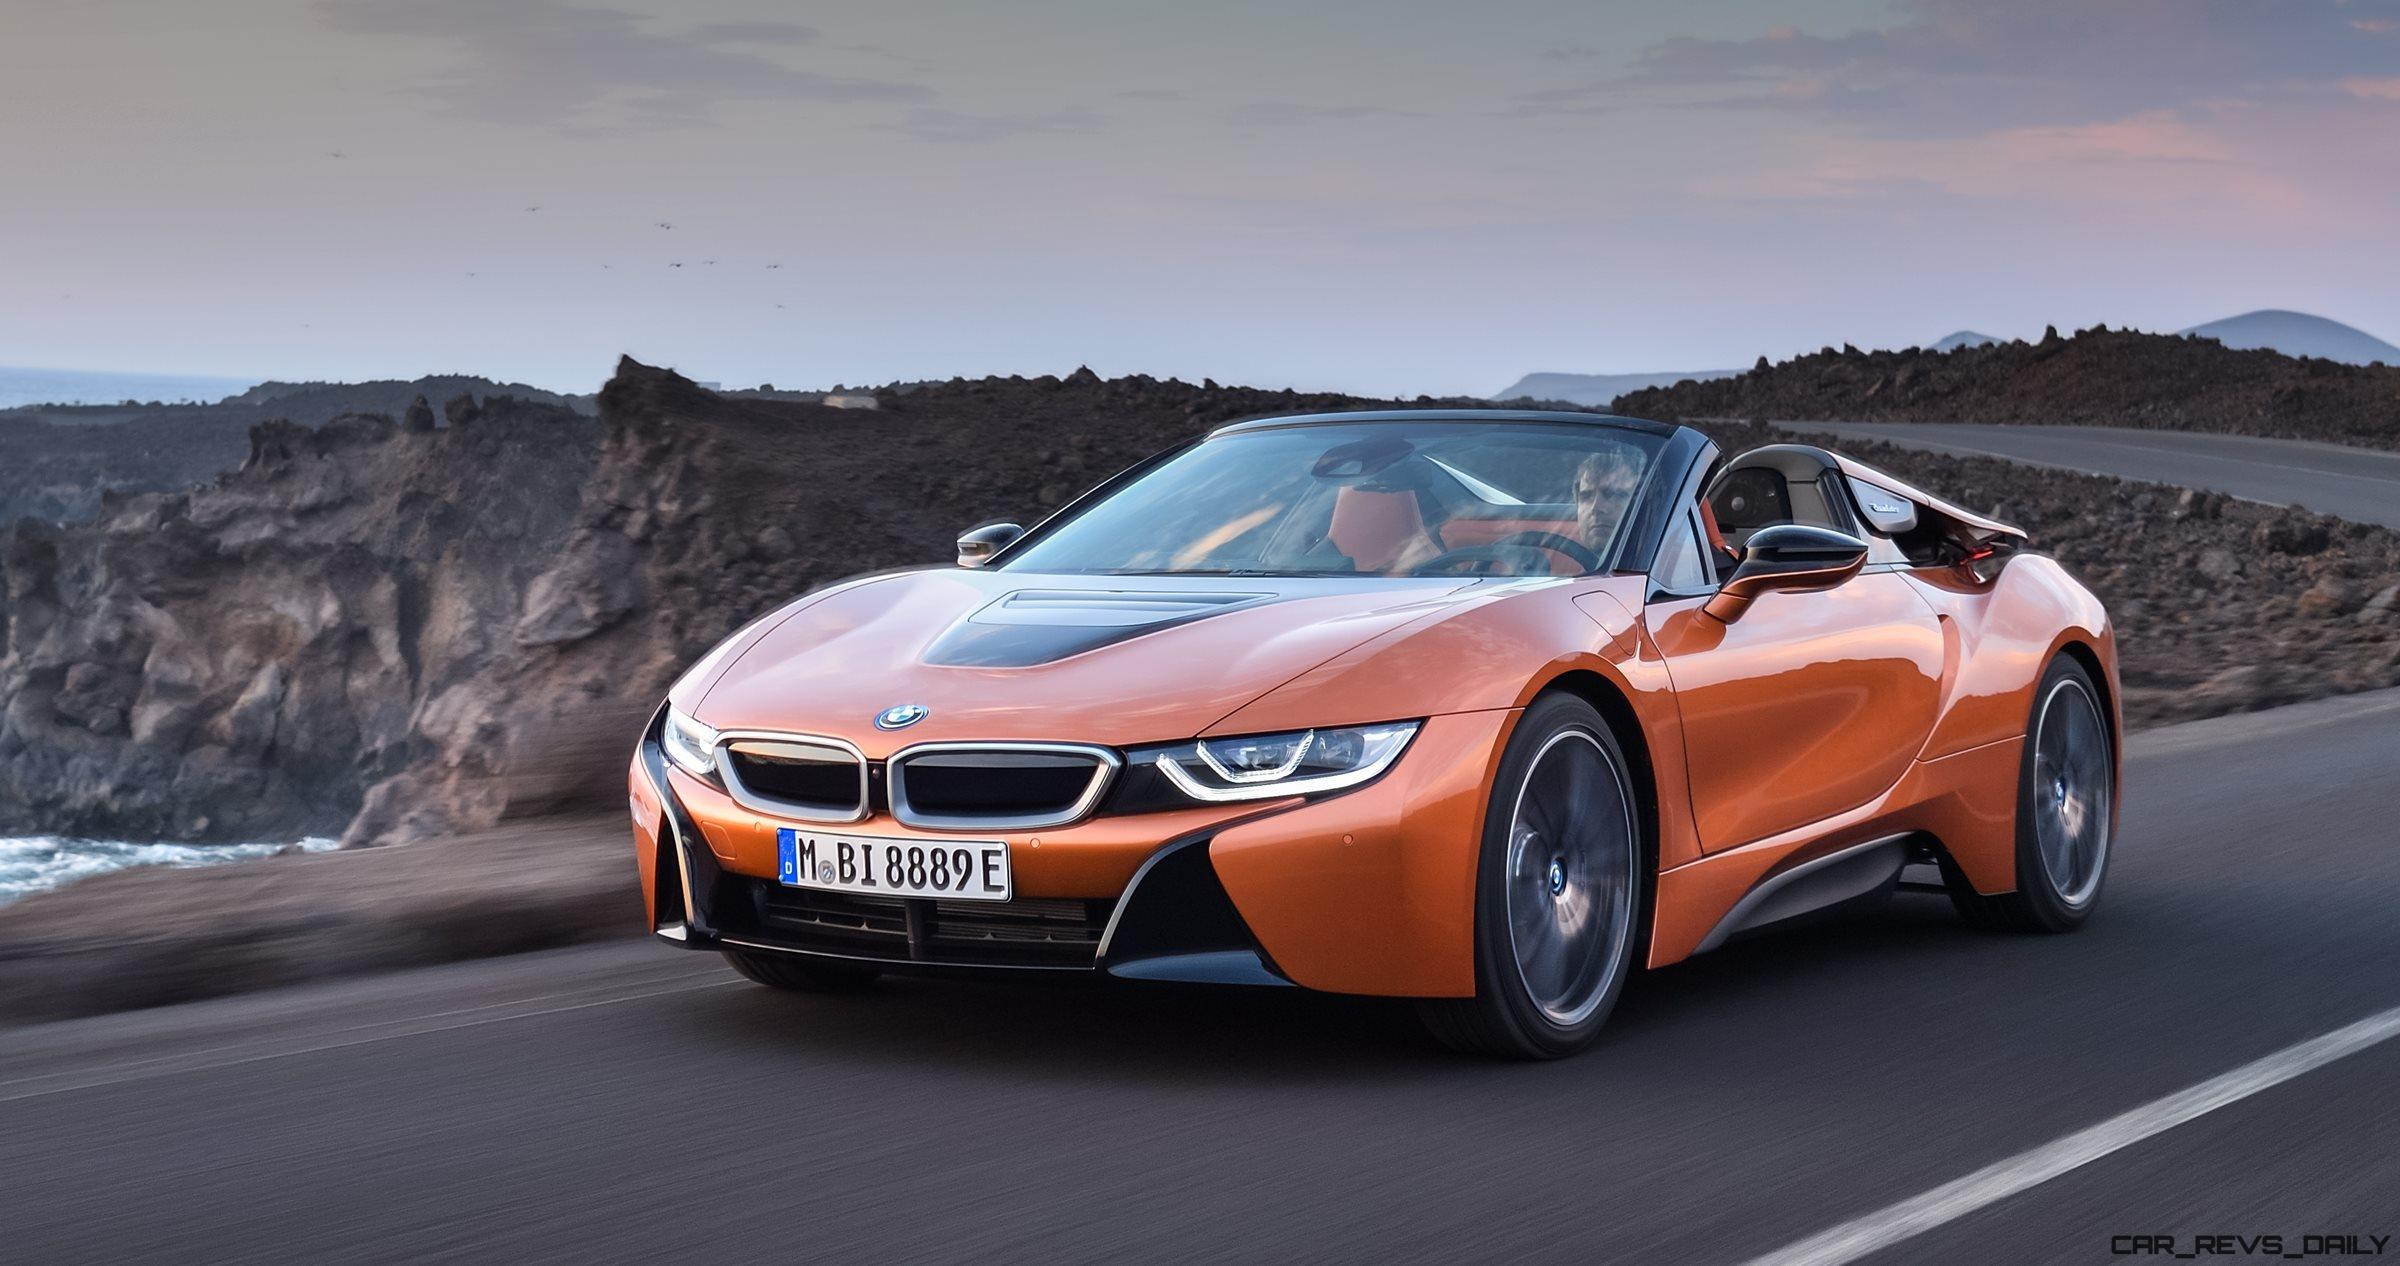 4 6s 2018 Bmw I8 Roadster Is No Brainer Ragtop Latest News